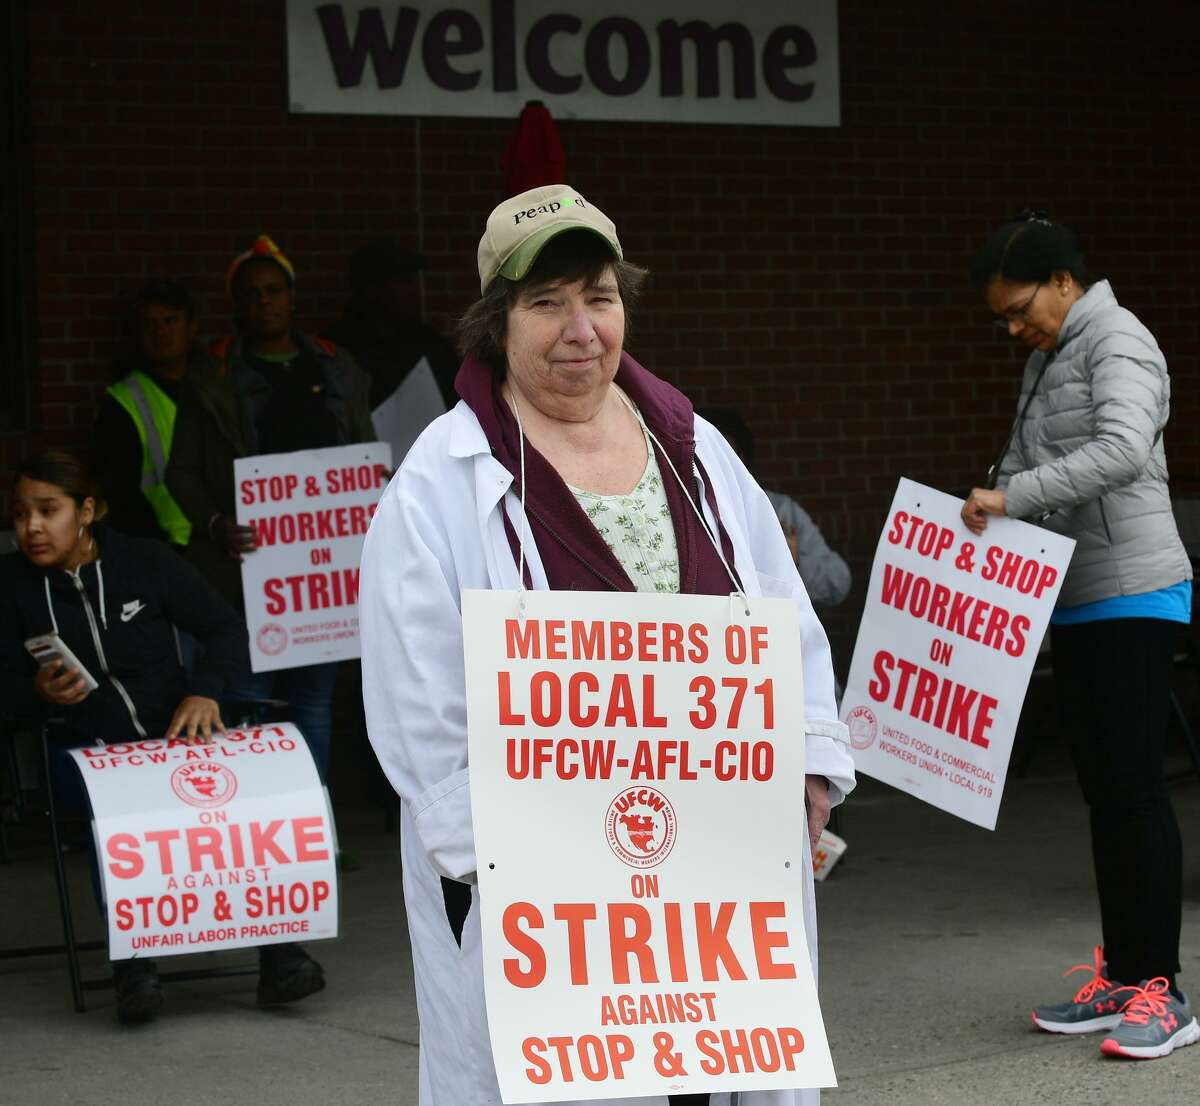 Workers with the UFCW-AFL-CIO Local 371 including Jean Federici strike Thursday, April 11, 2019, at the Stop & Shop on Main Avenue in Norwalk, Conn.